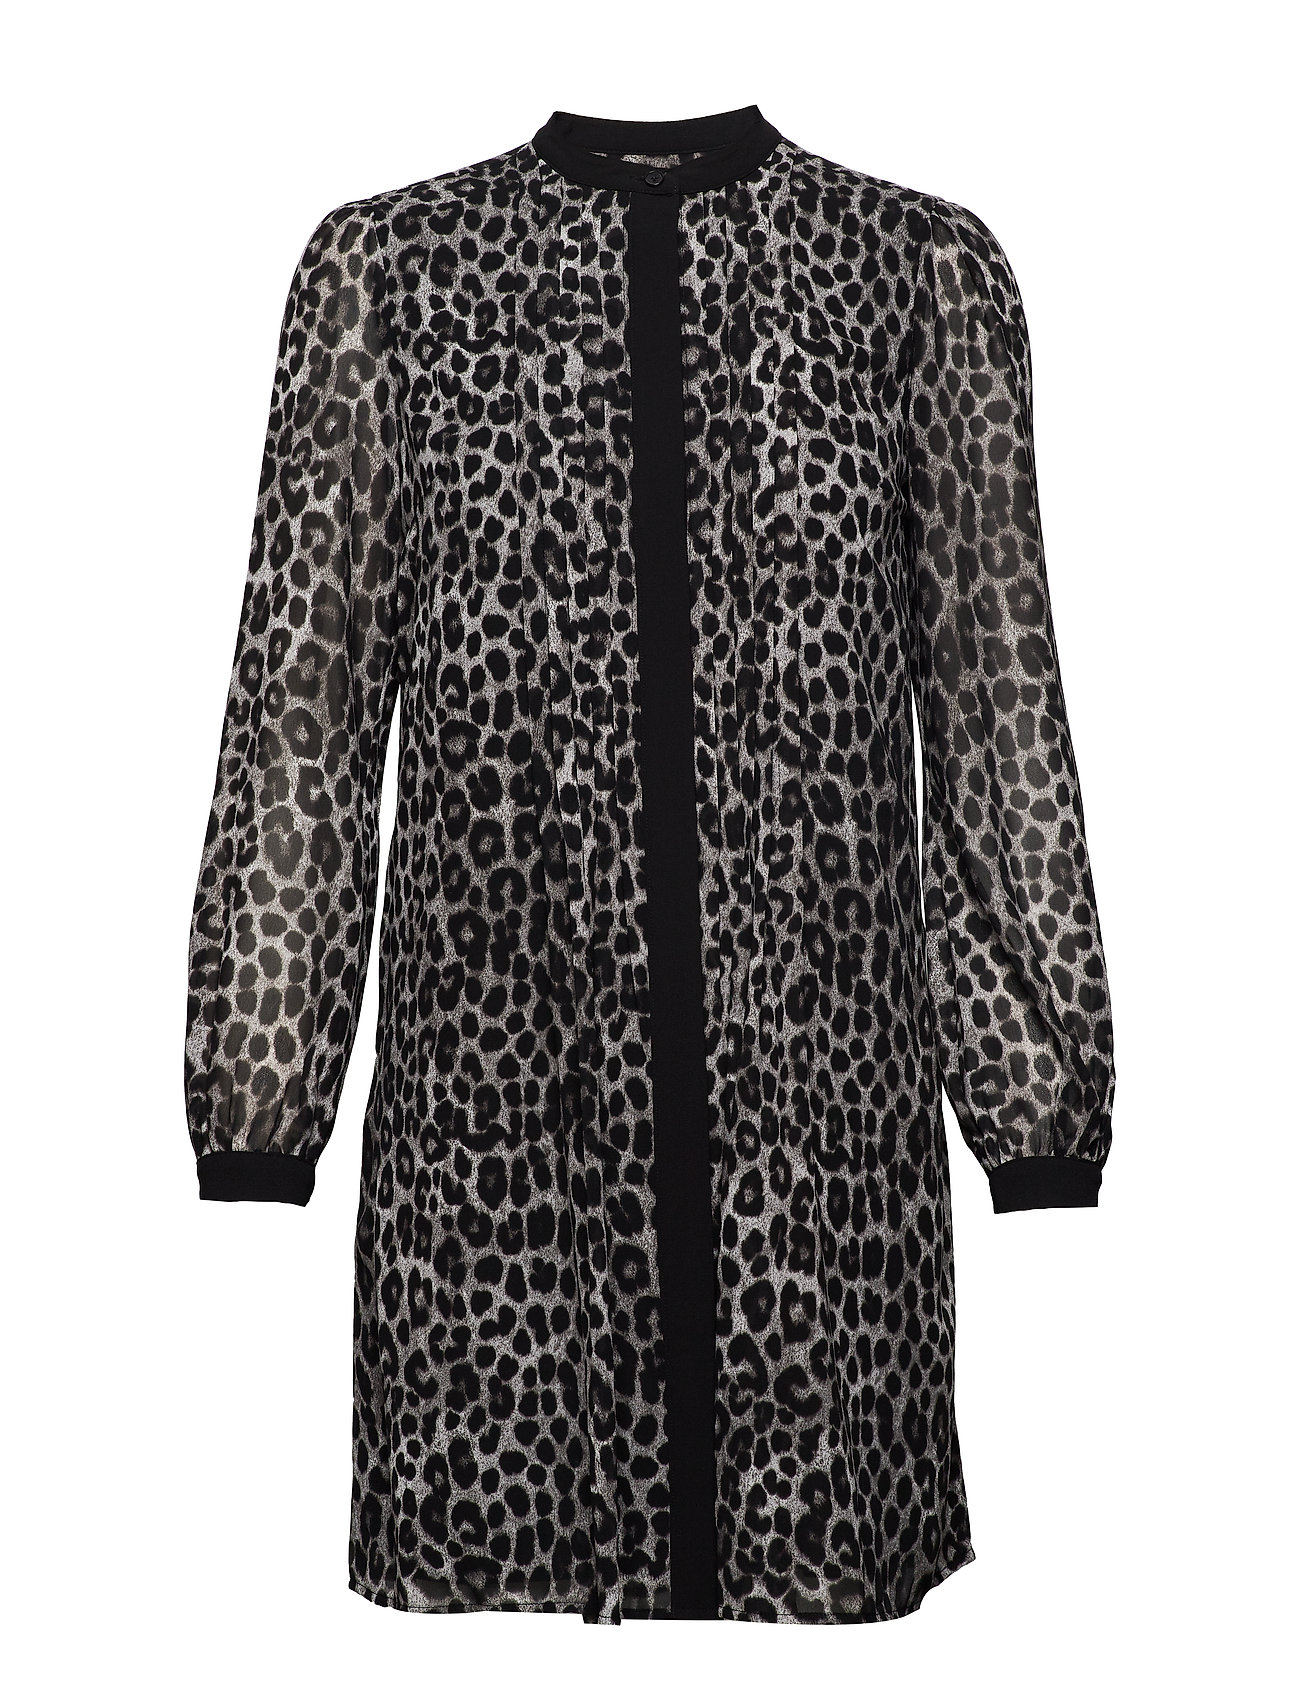 Michael Kors LS CHEETAH SHRTDRESS - GUNMETAL